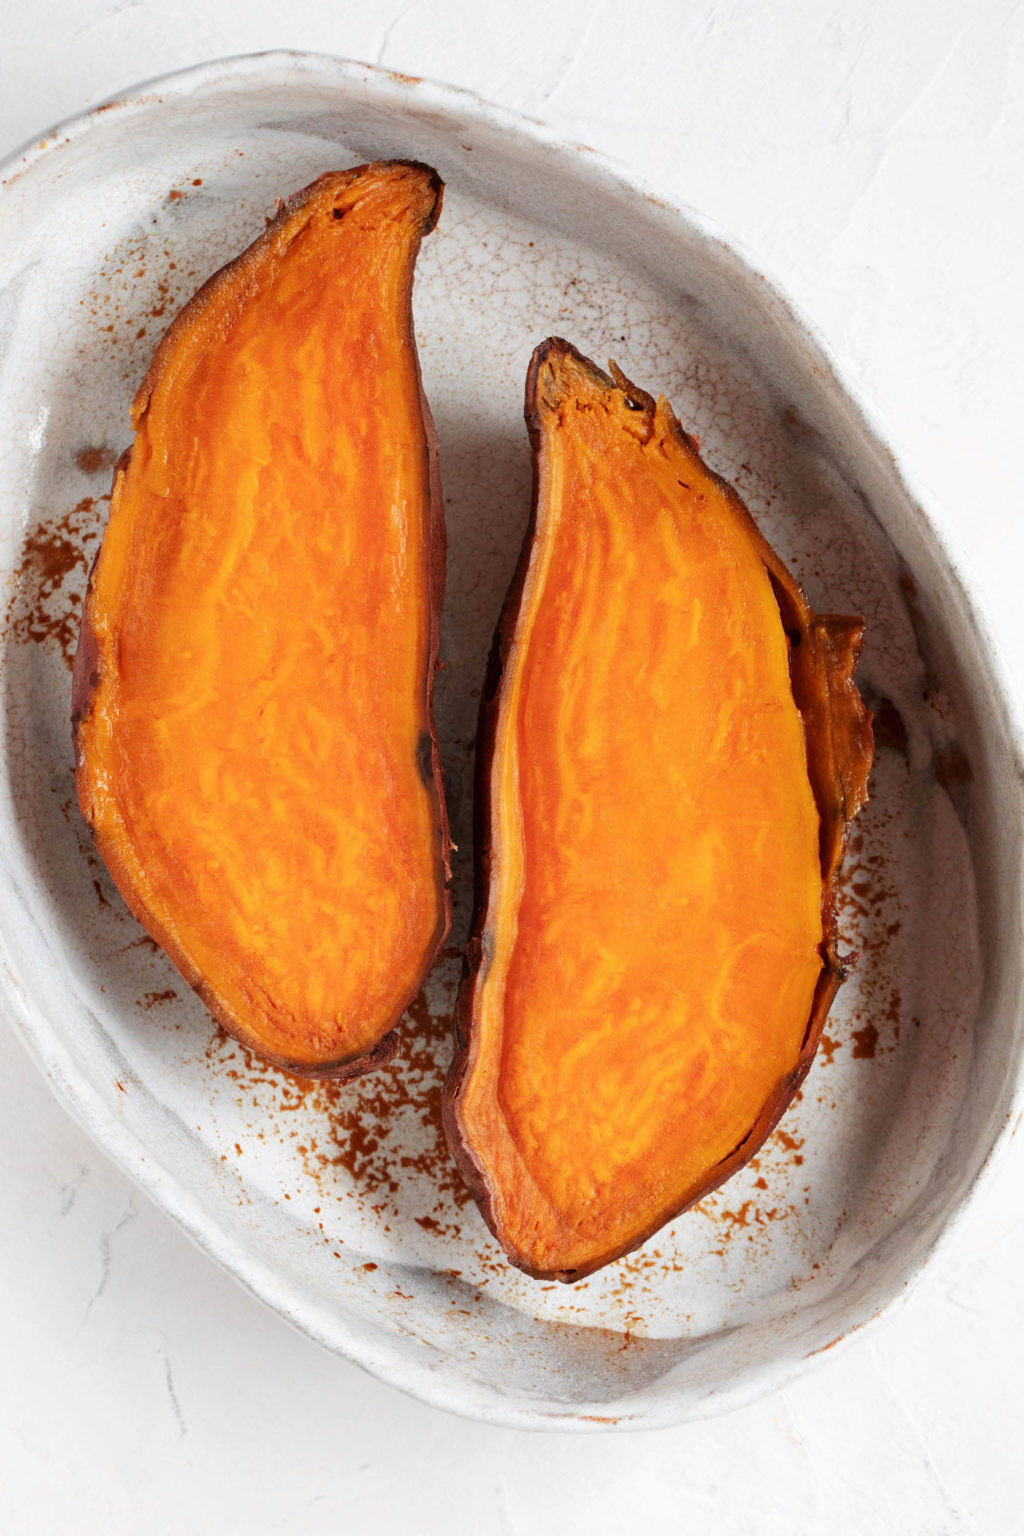 A ceramic baking dish holds two, recently baked sweet potato halves.